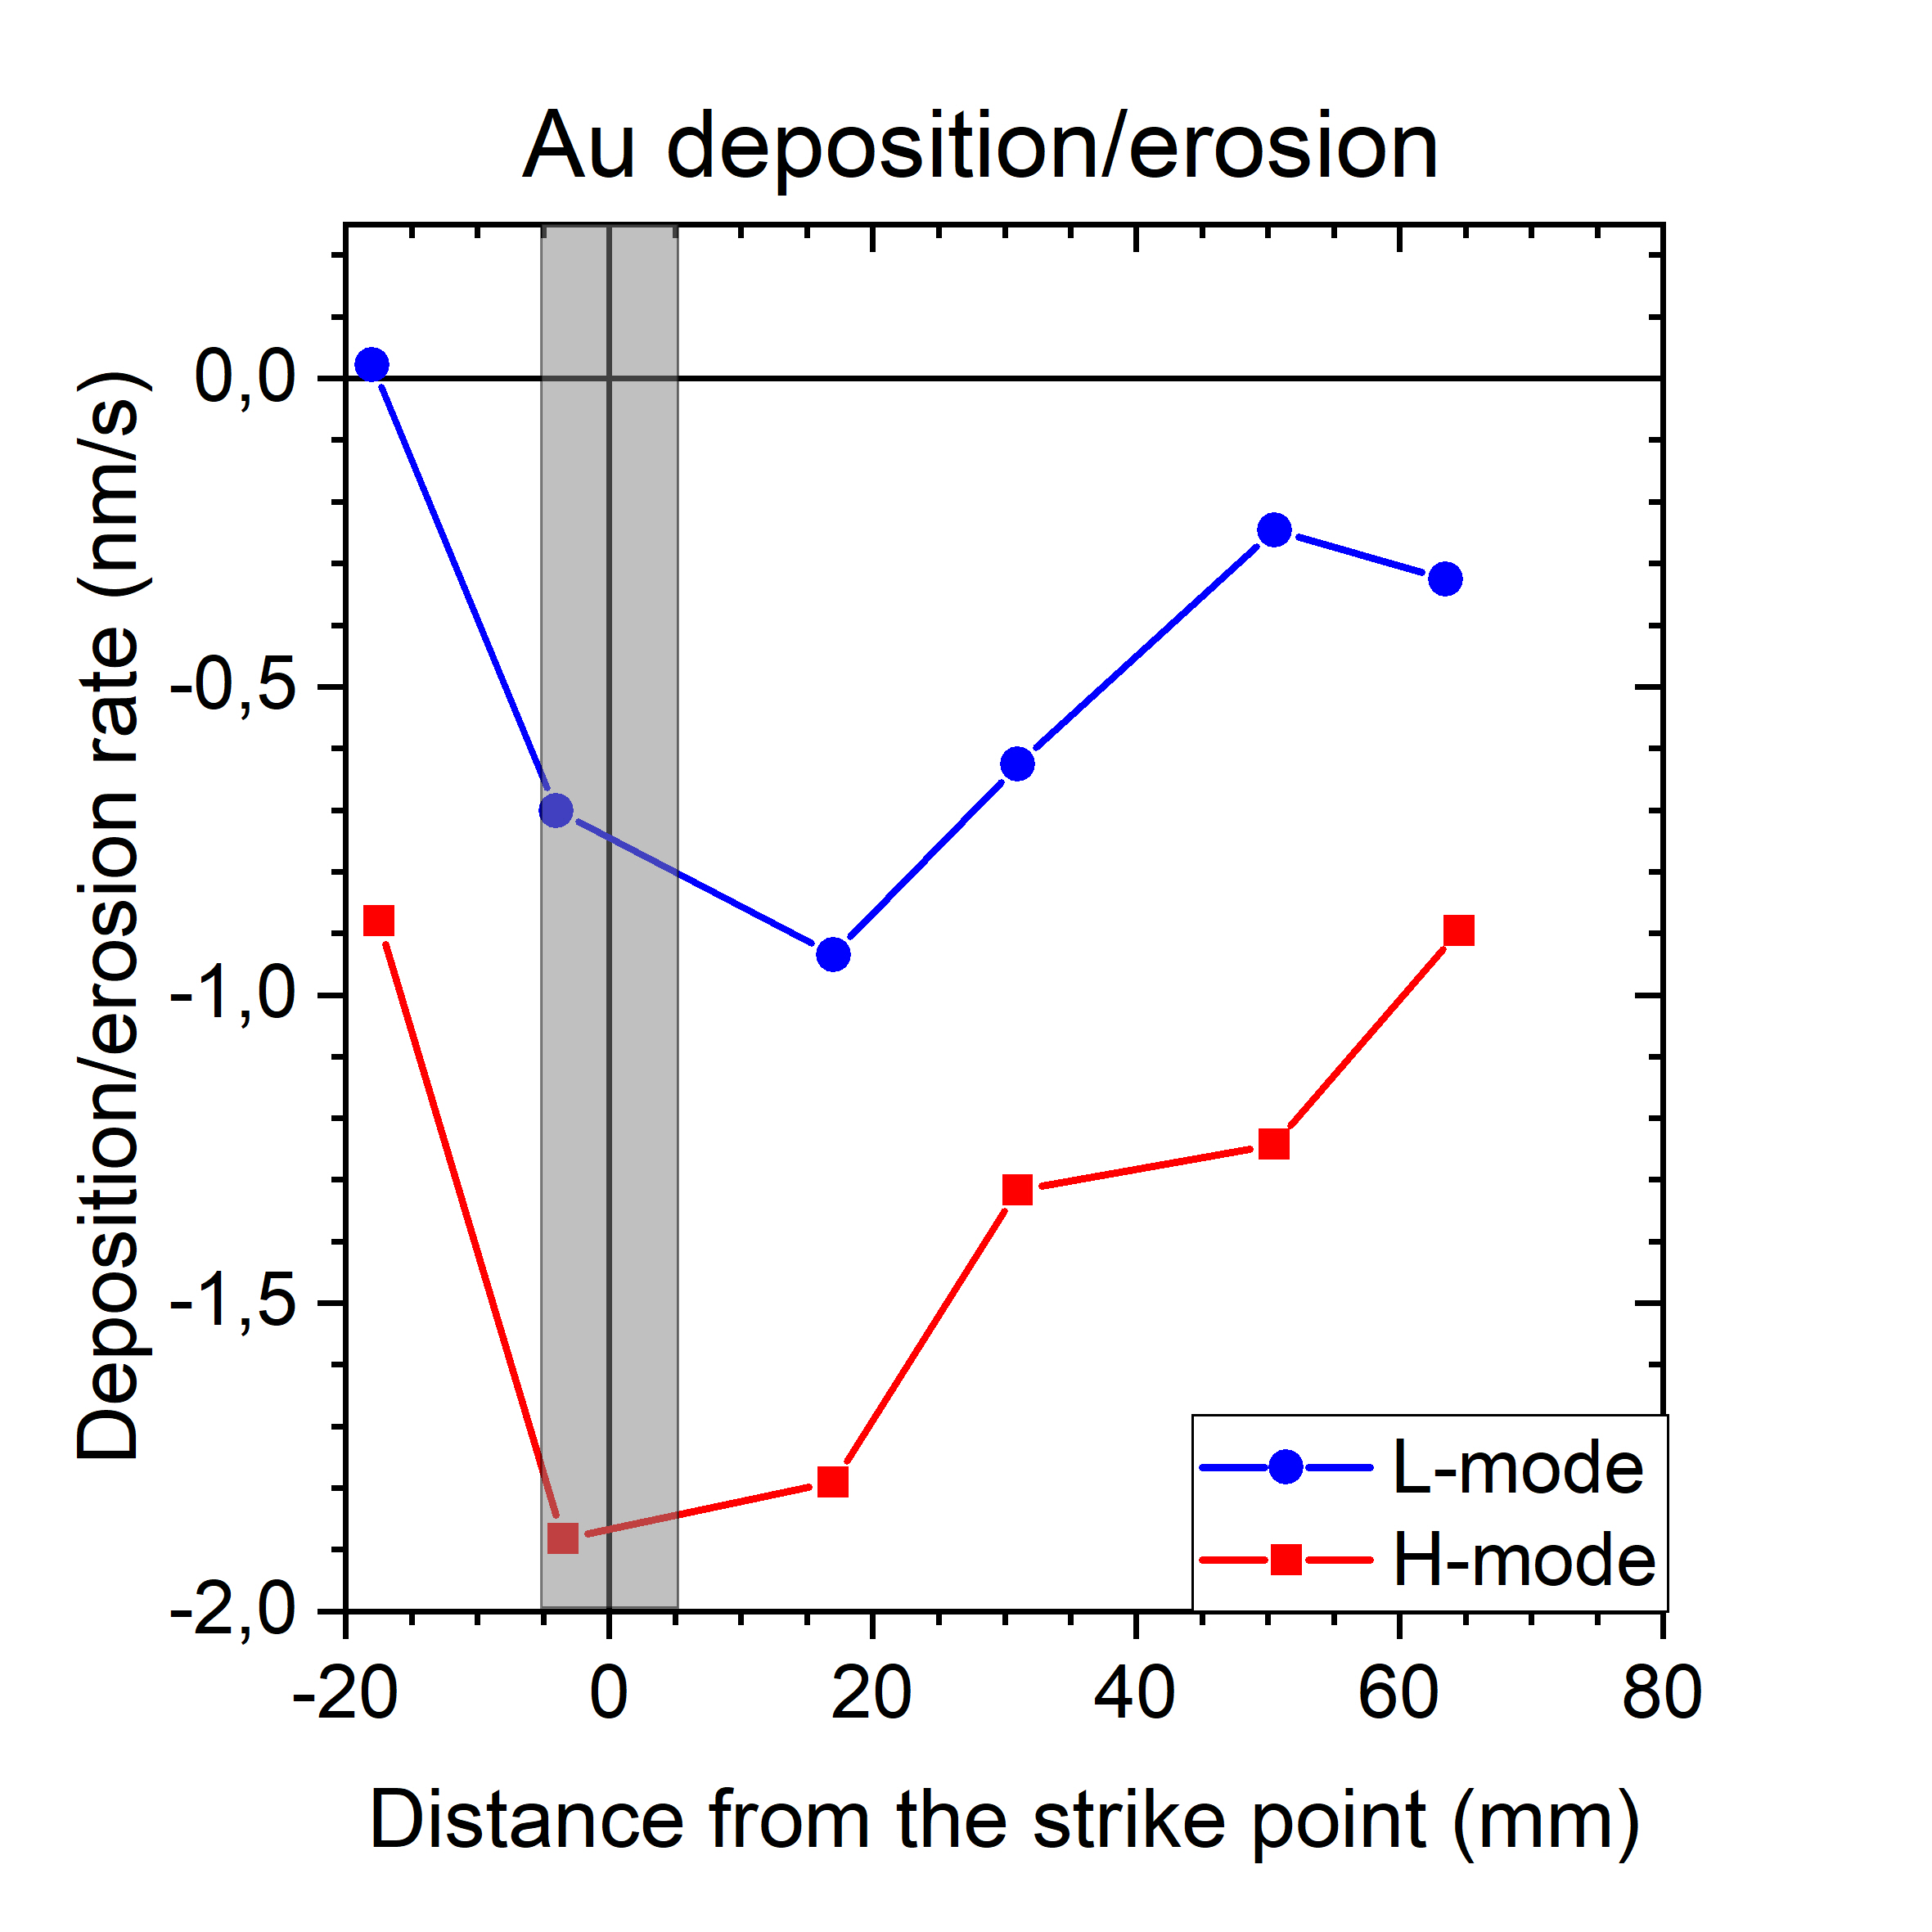 Net erosion/deposition profiles of the W proxy Au markers during L- and H-mode discharges on AUG.